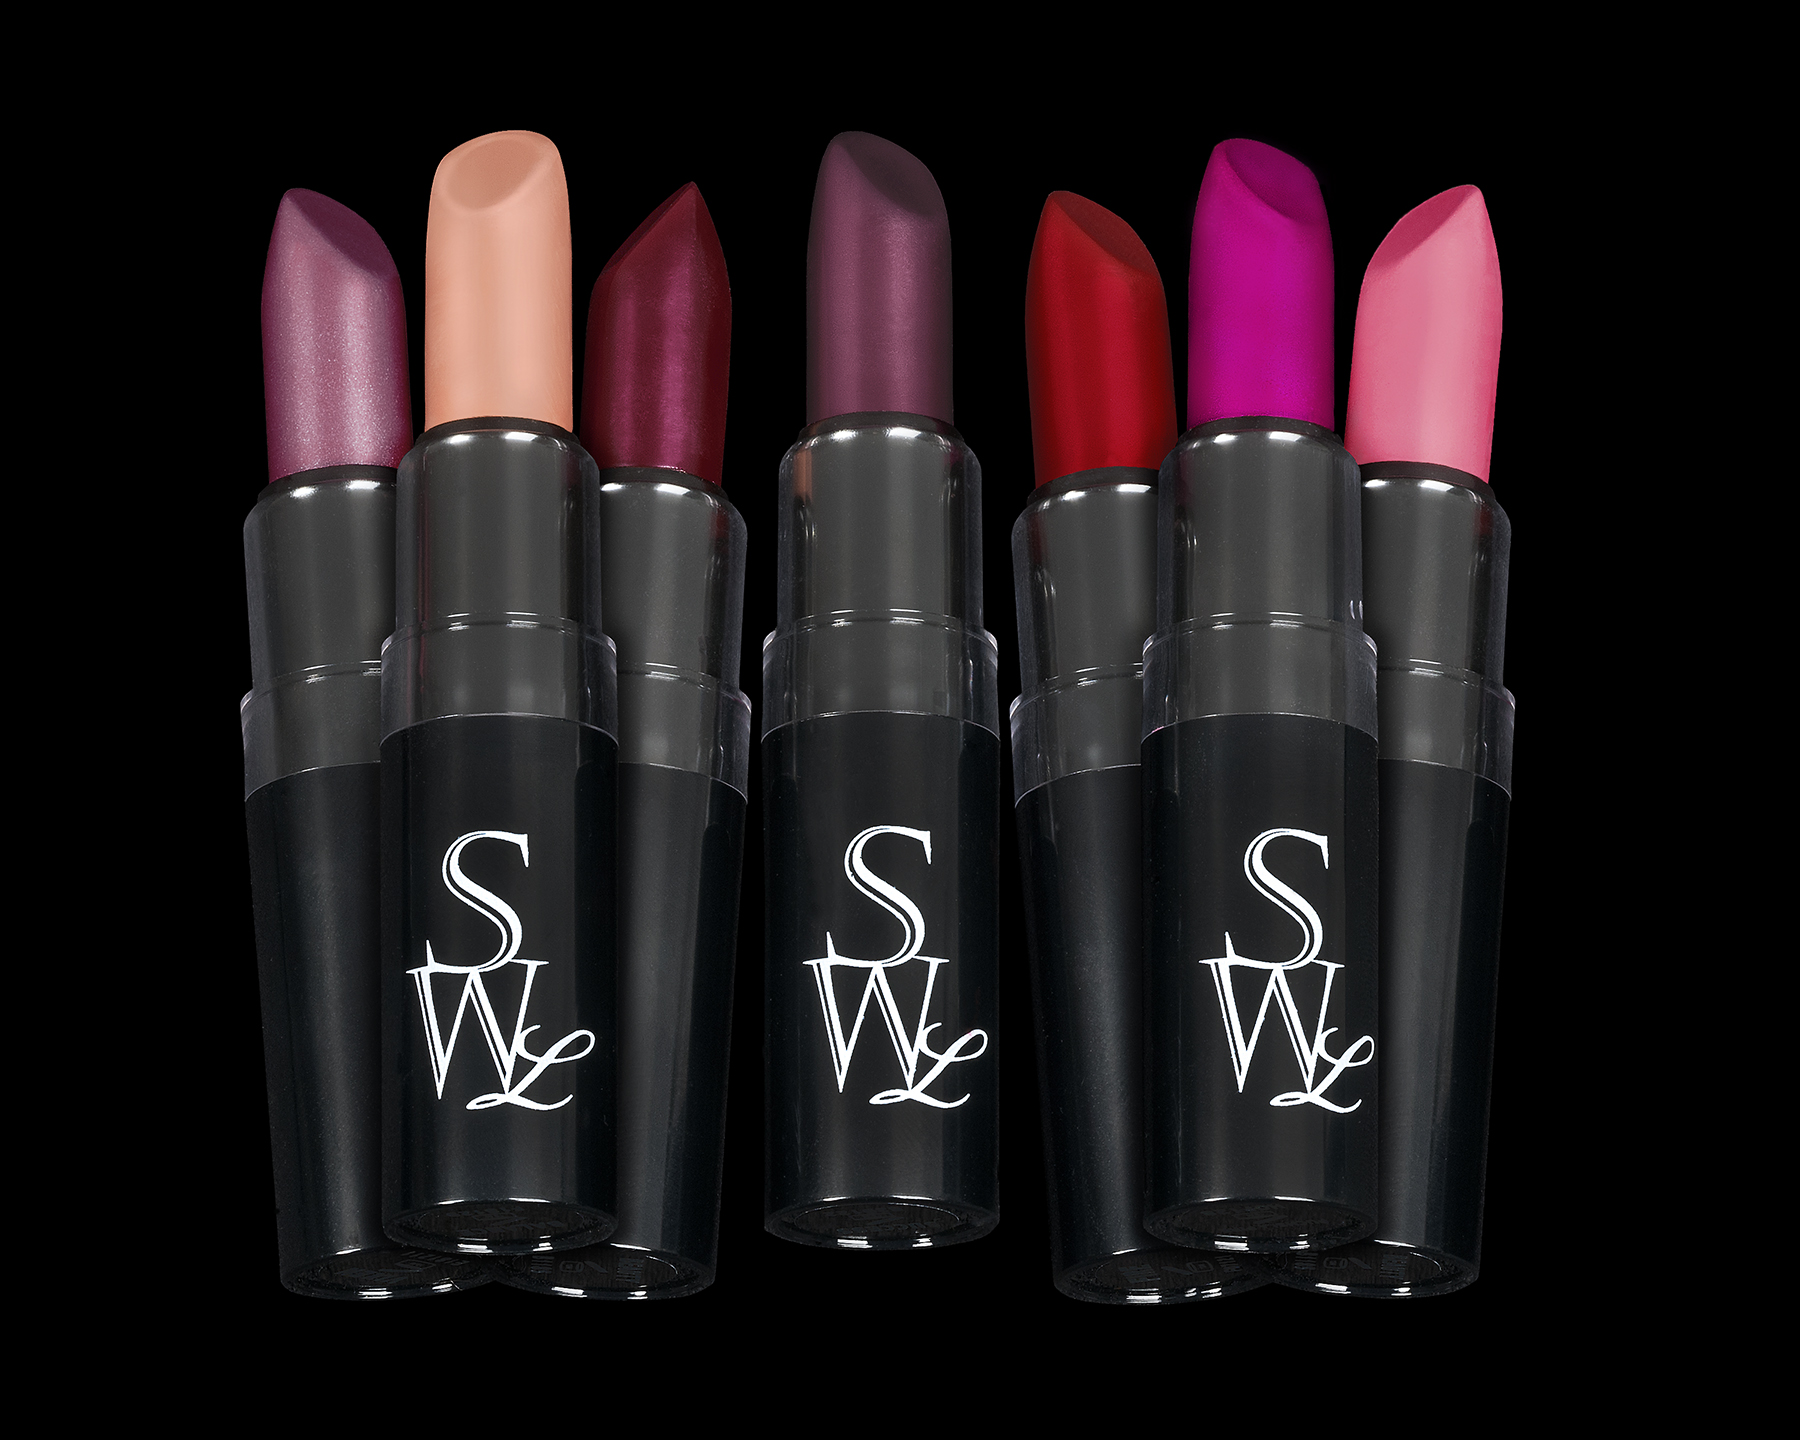 SWL Lipstick Collection & Vicki Irvin Partner With Singer